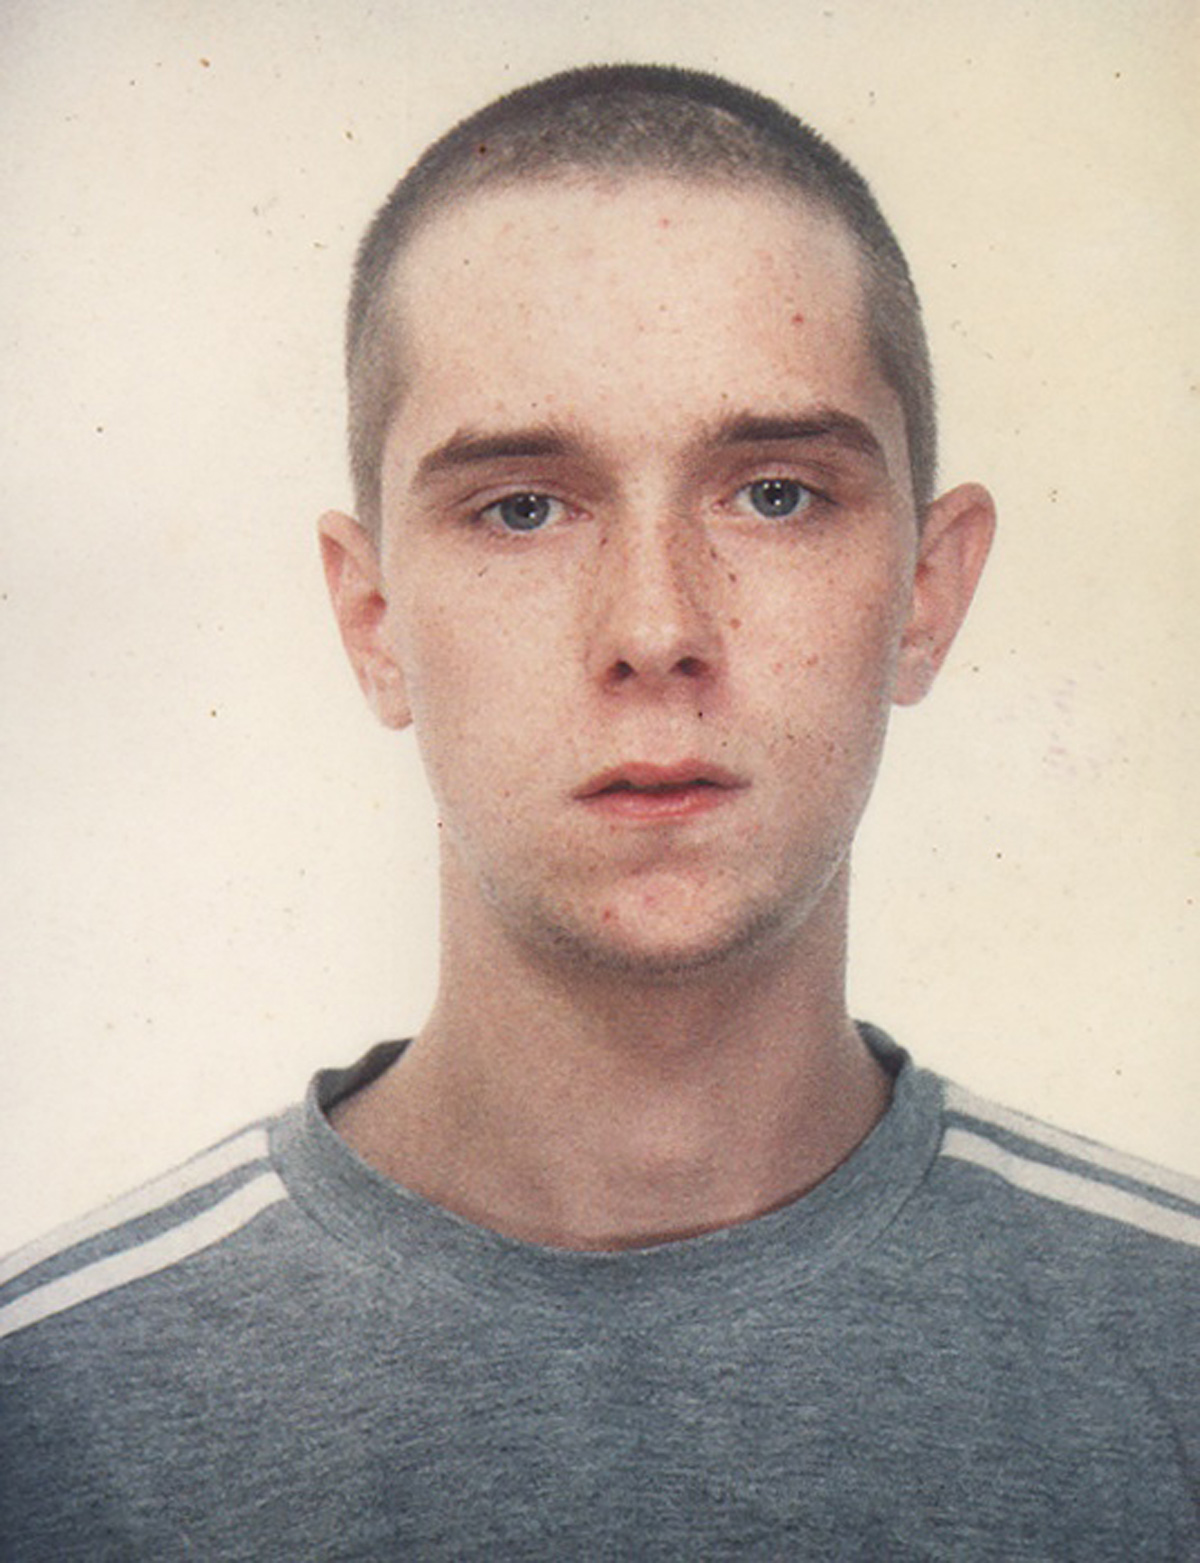 Christopher Barlow, 19, of Broughton, near Malton, who died in May 2004